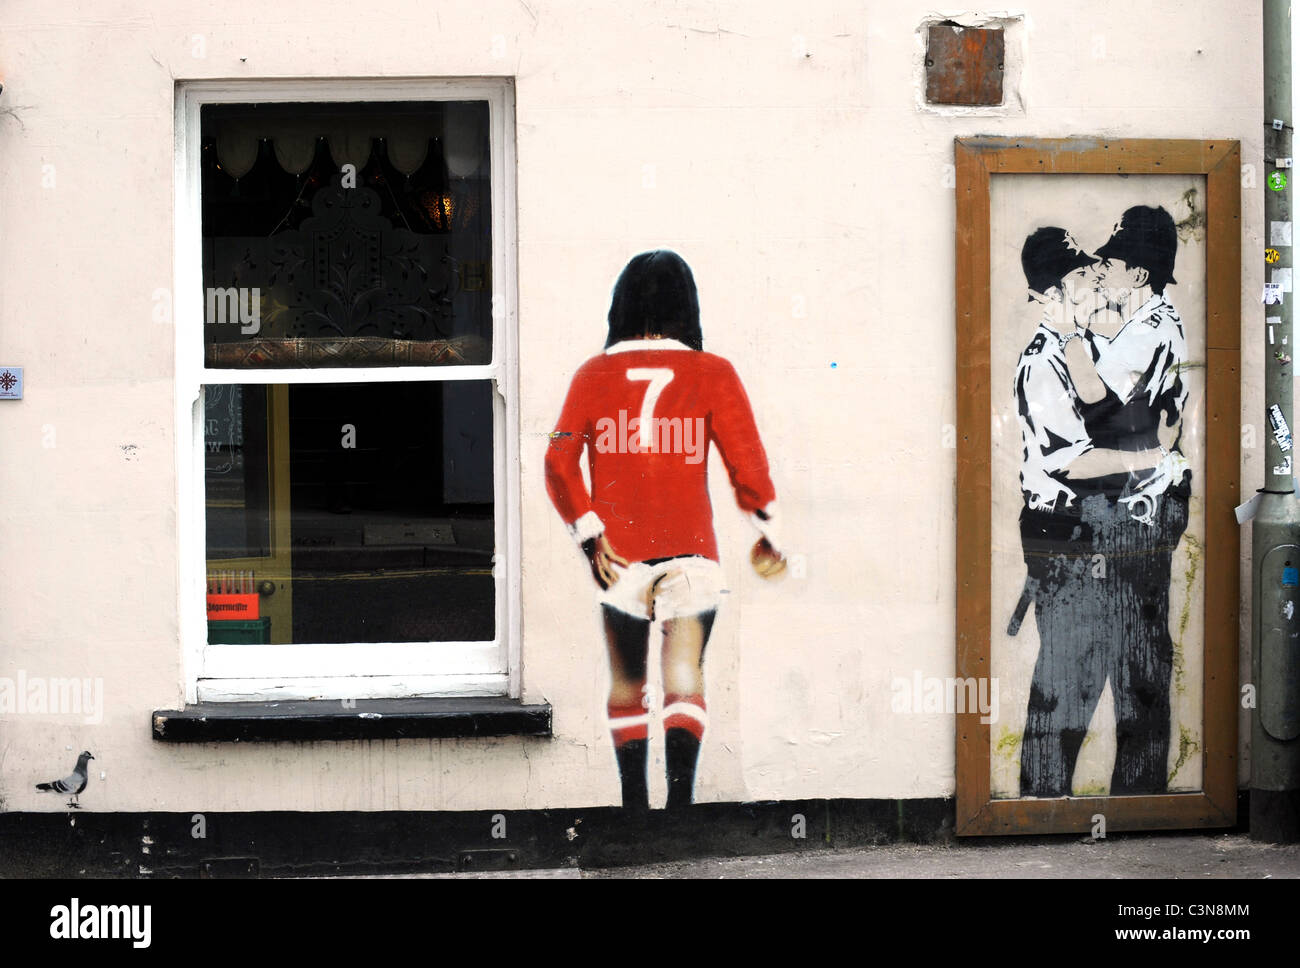 kissing coppers stock photos kissing coppers stock images alamy banksy graffiti on the wall of the prince albert pub in brighton the kissing policemen